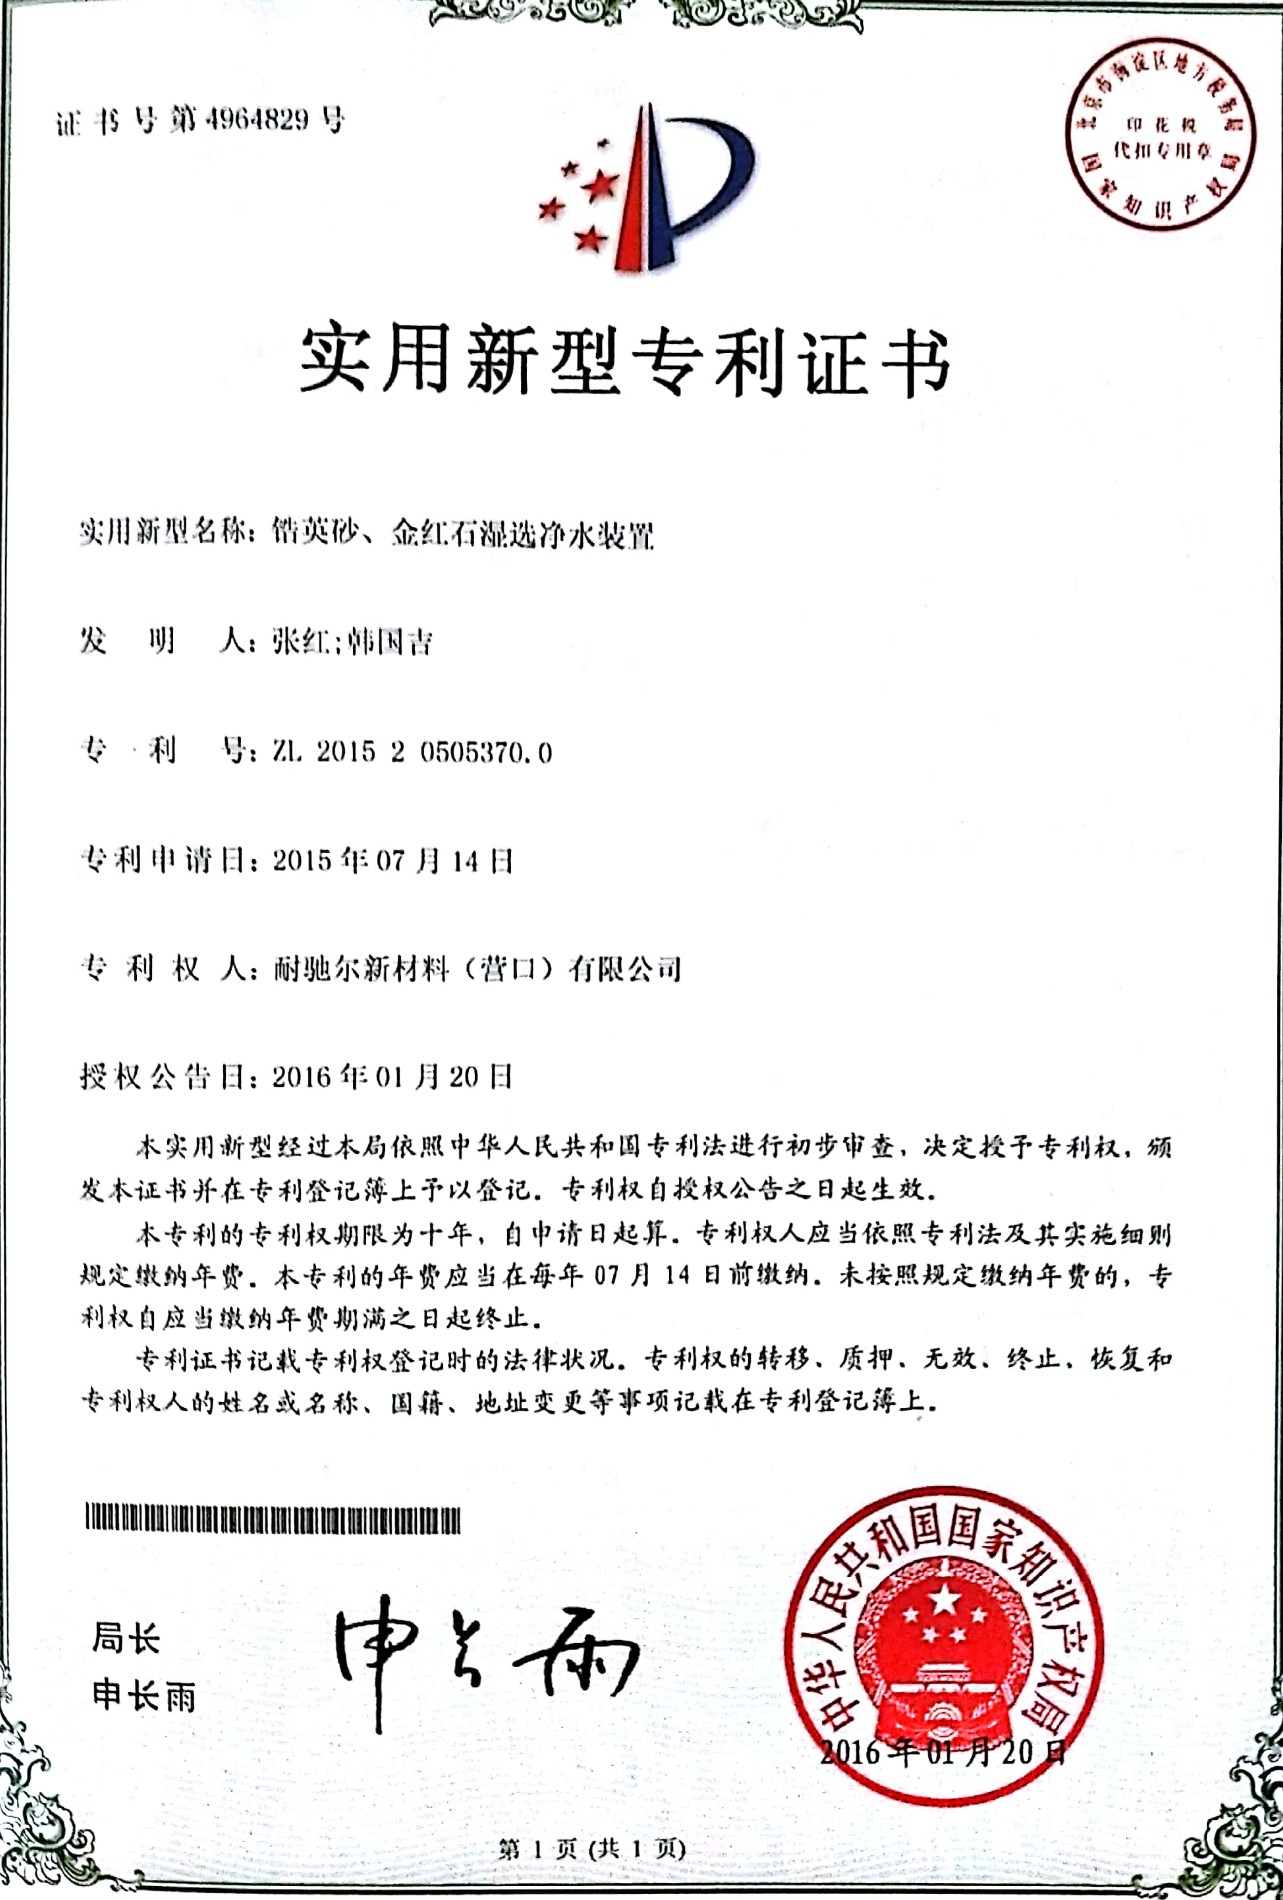 Patents of New Process